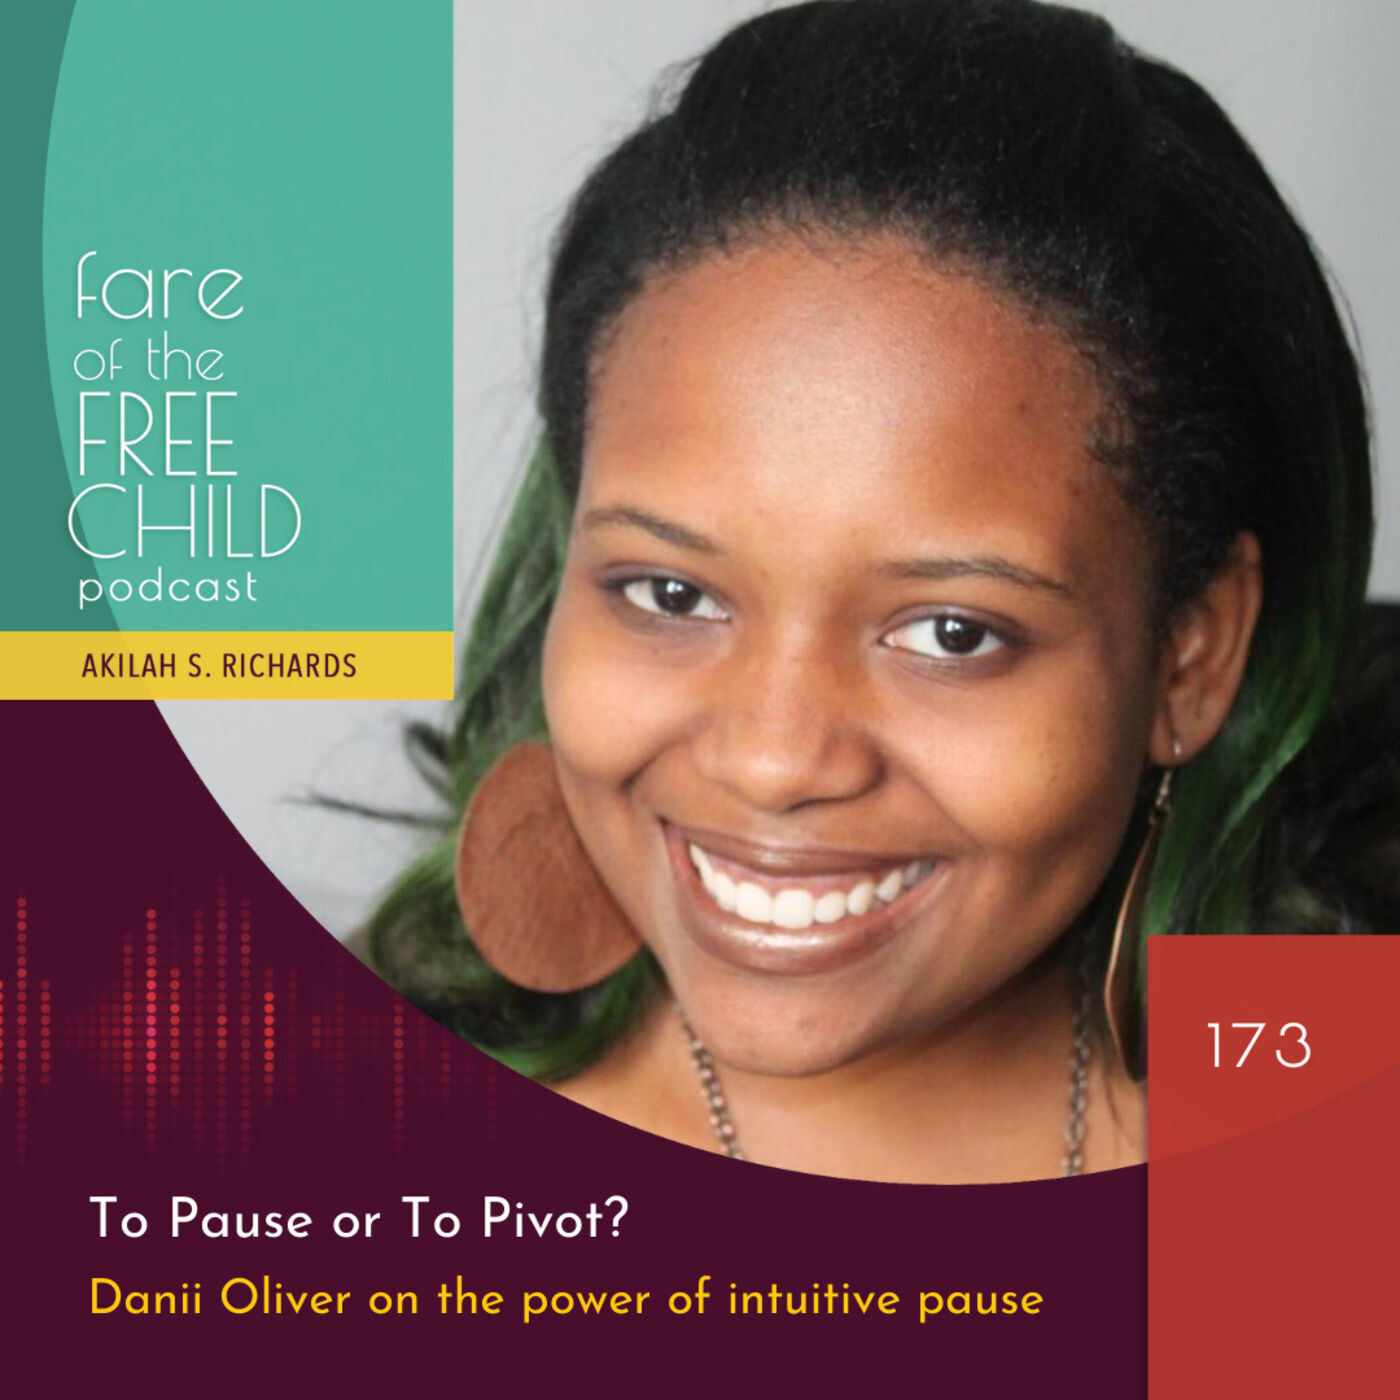 EP:173 - To Pause or To Pivot? Danii Oliver on the power of intuitive pause